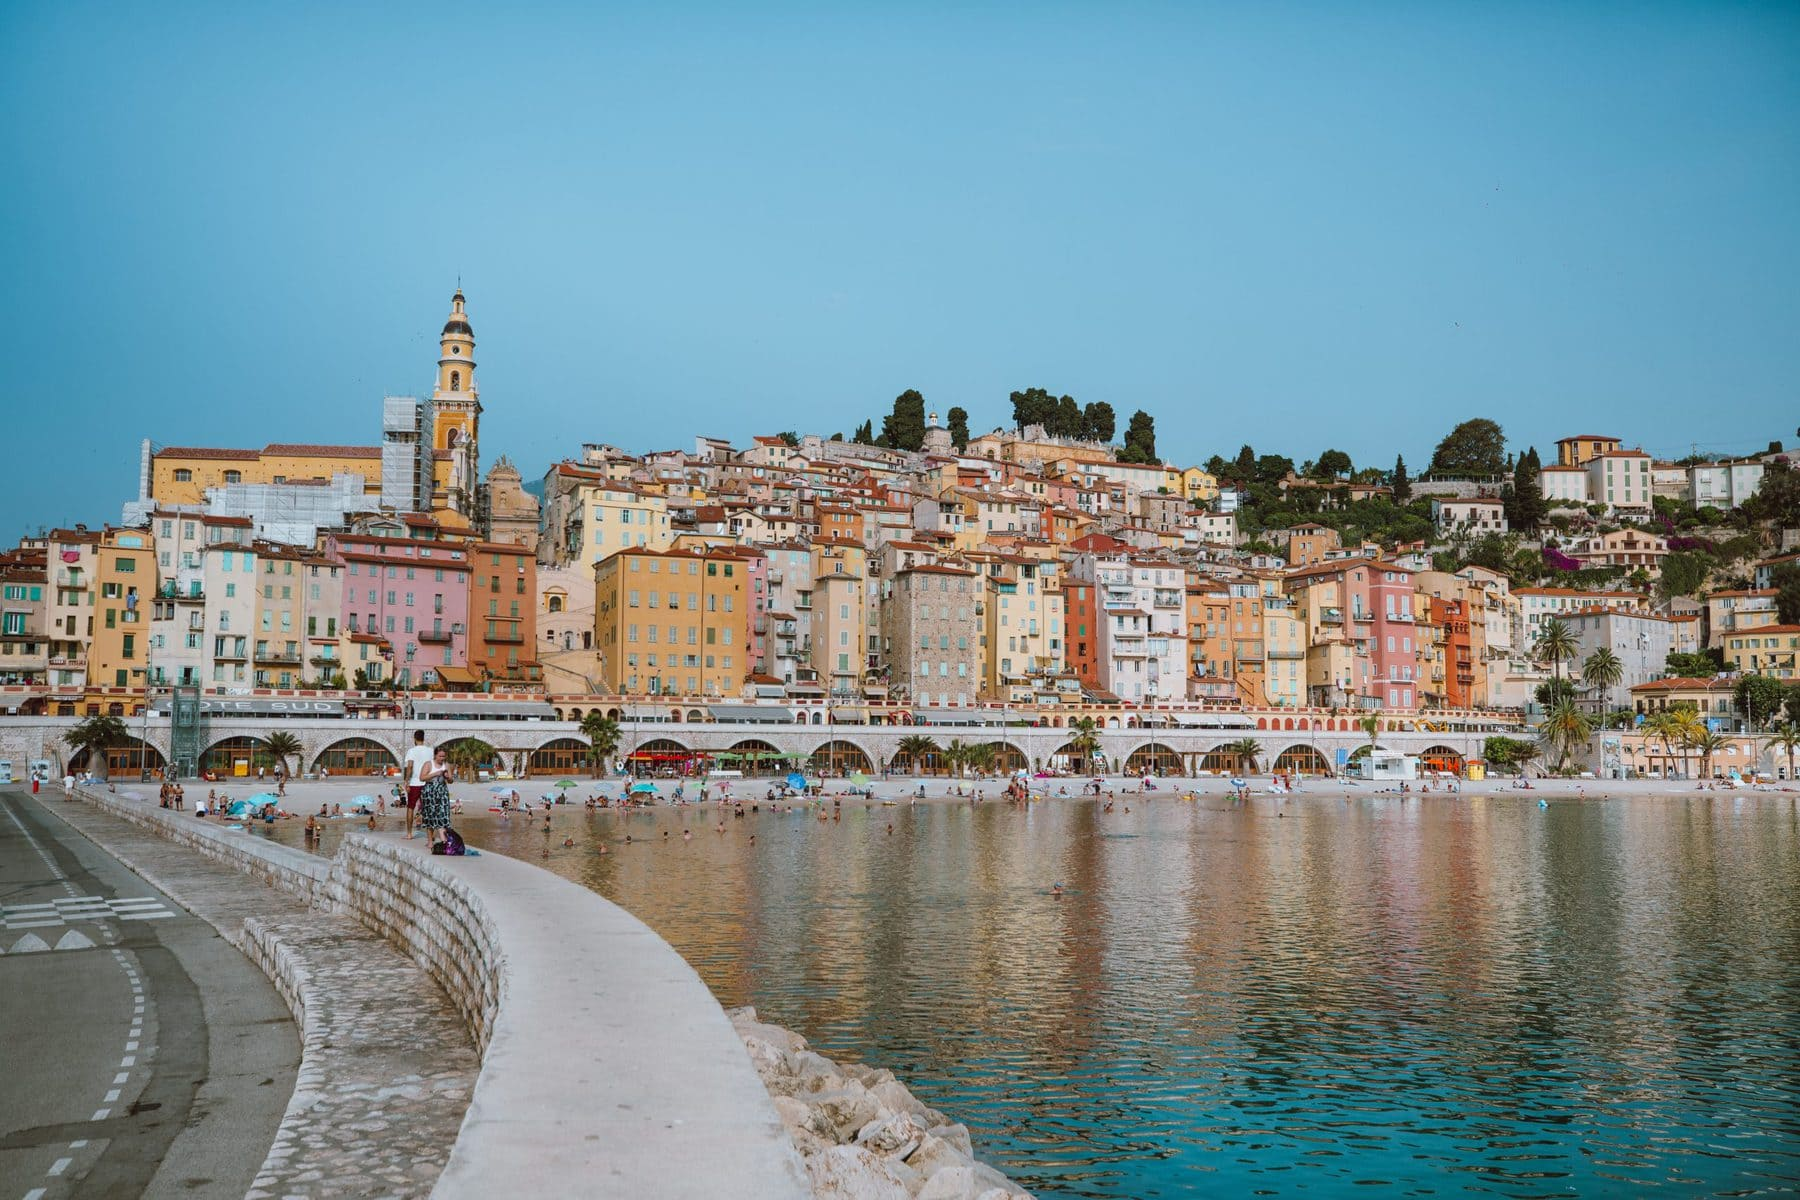 View of Menton, France from across the water